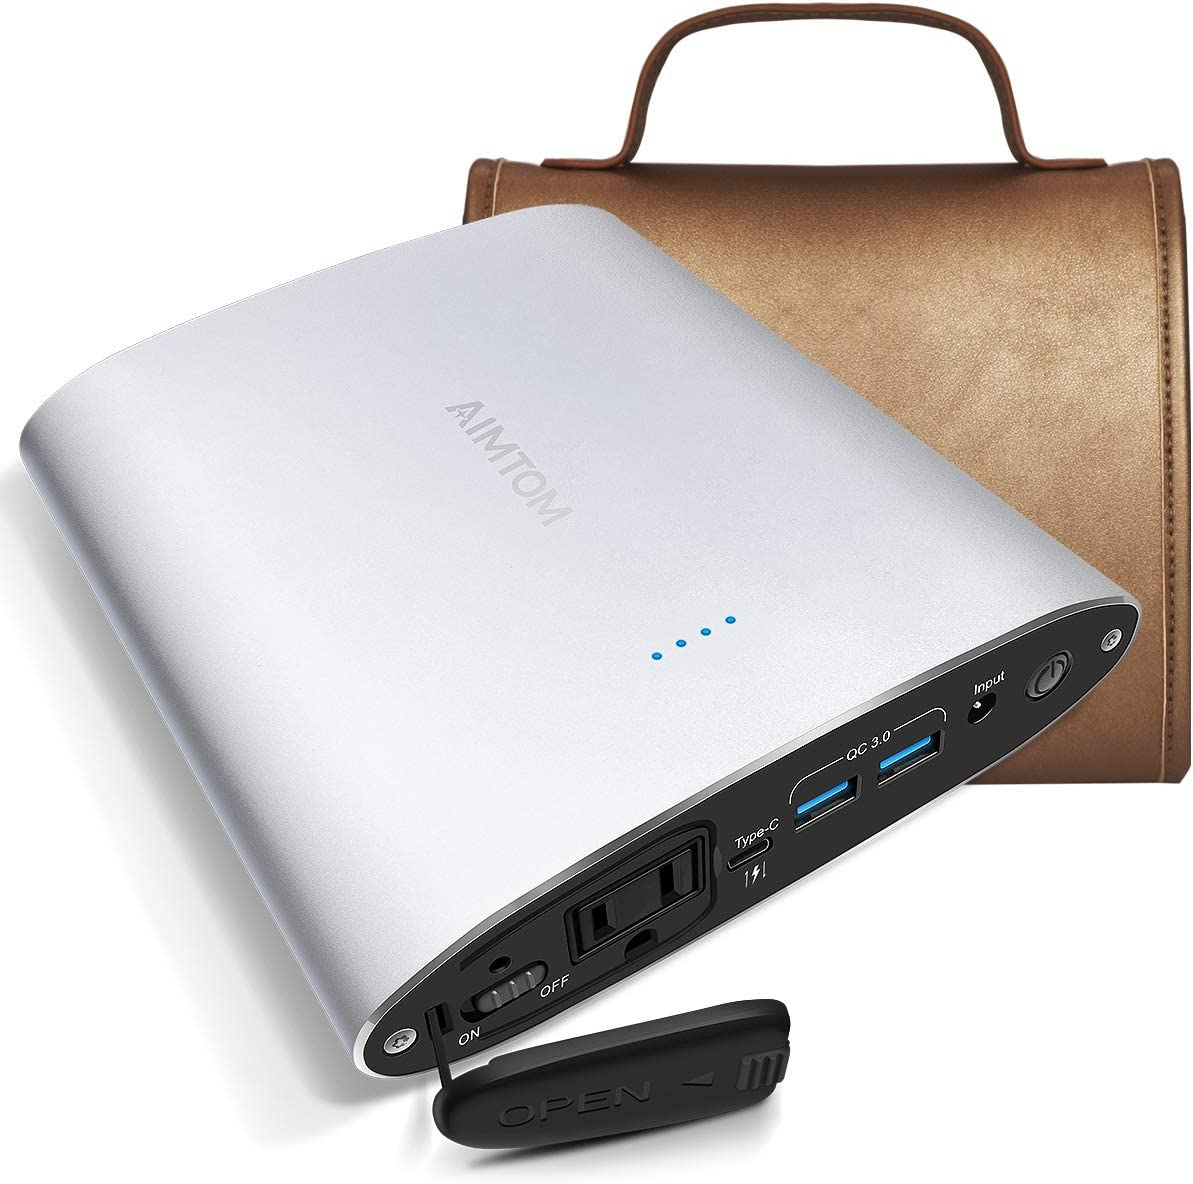 AIMTOM 99Wh Portable Power Station, 110V 100W AC Outlet, 30W USB-C and Quick Charge 3.0 (Allowed on a Flight), 26800mAh Laptop Power Bank, External Battery Pack for MacBook, Laptop, Cell Phone, Camera